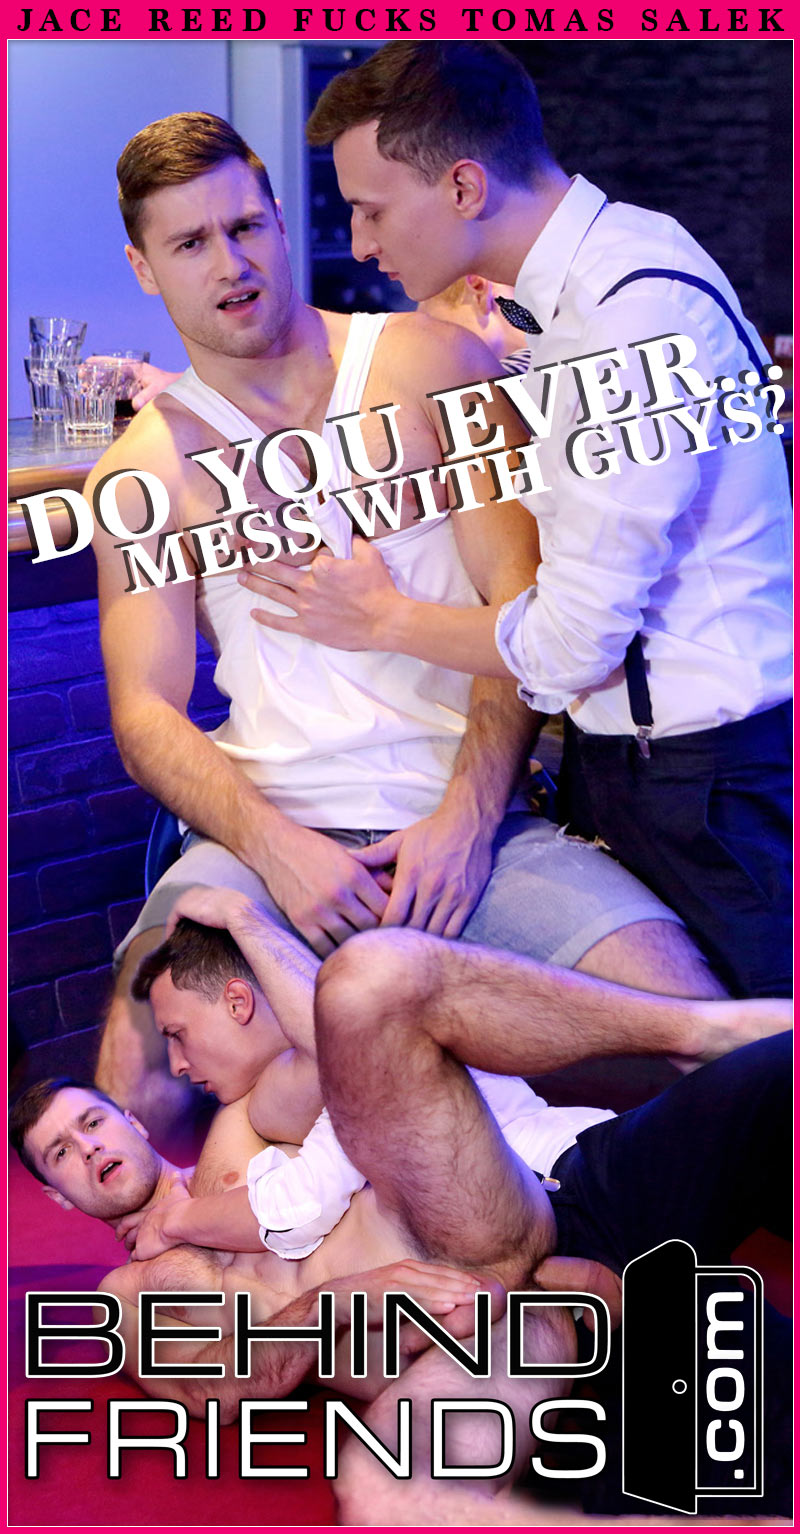 Do You Ever Mess With Guys? (Jace Reed Fucks Tomas Salek) (Bareback) at Behind Friends